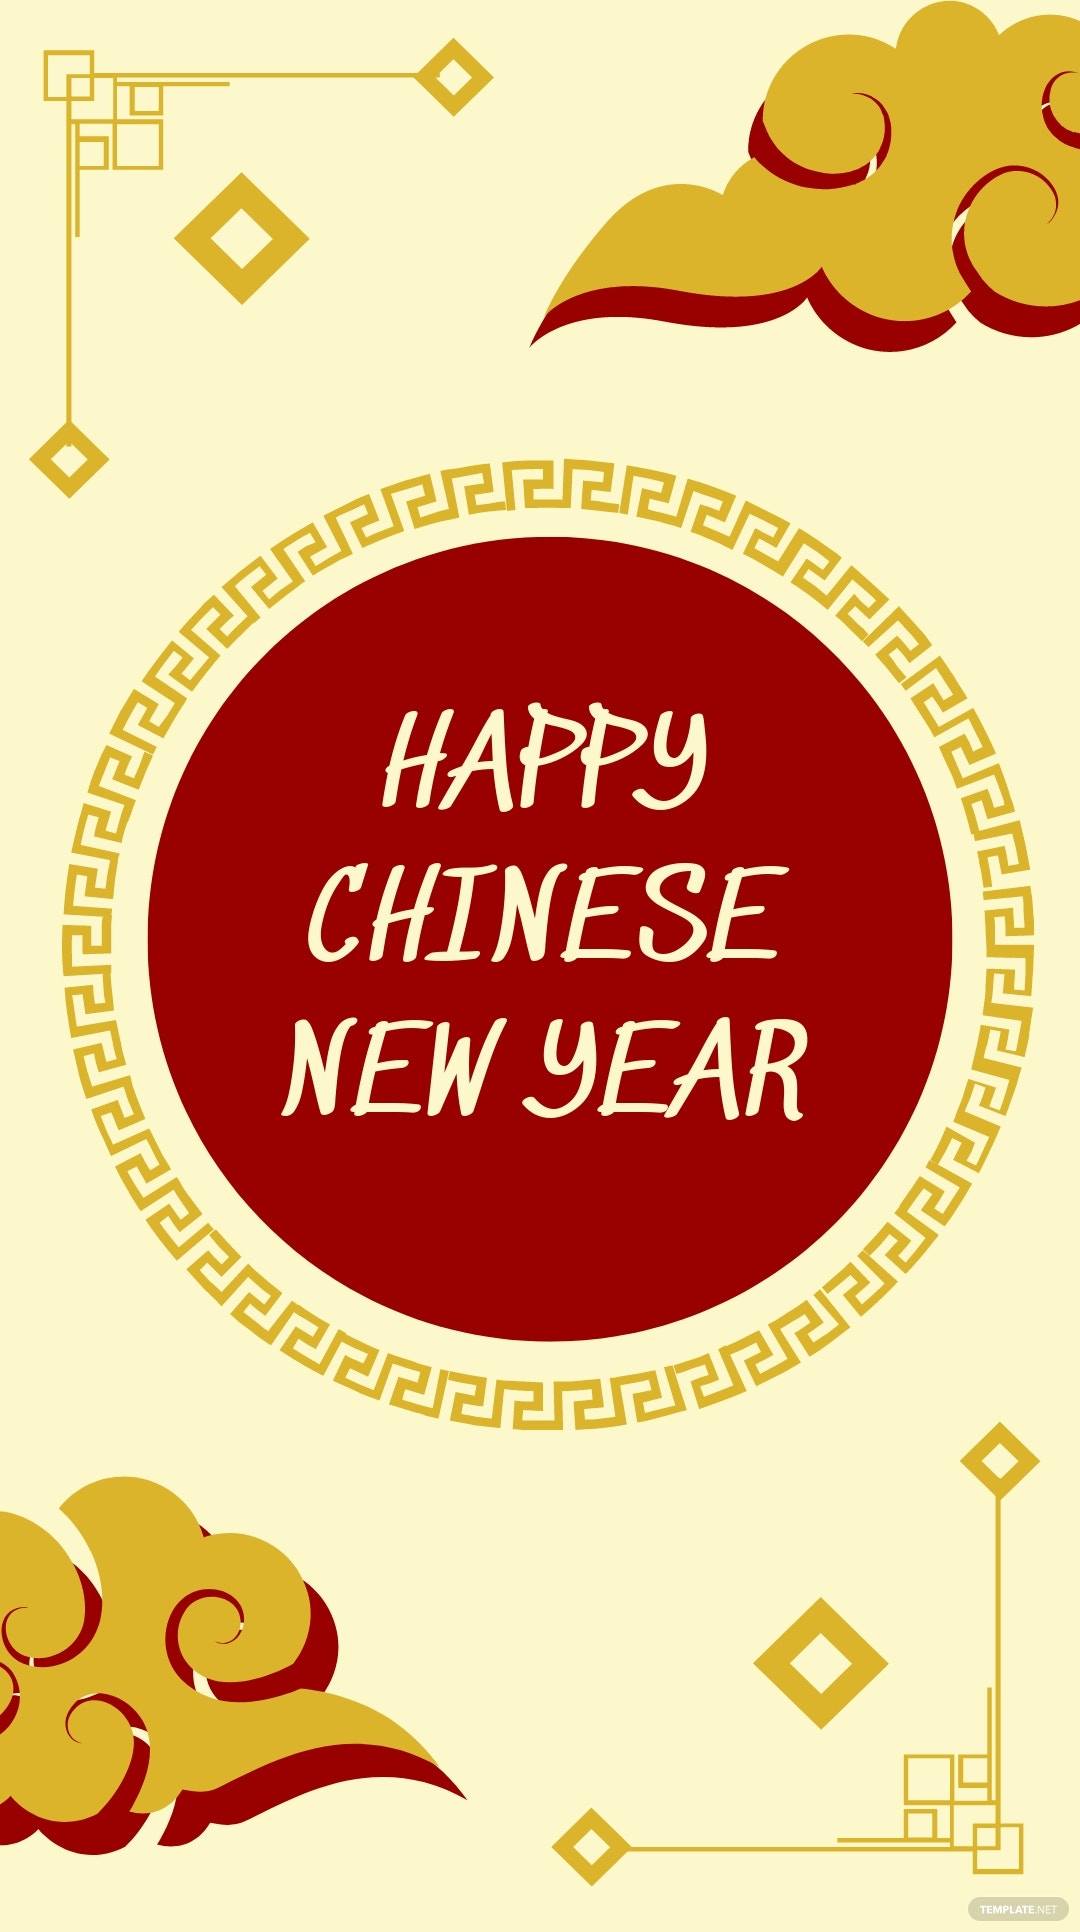 Vintage Chinese New Year Instagram Story Template 1.jpe